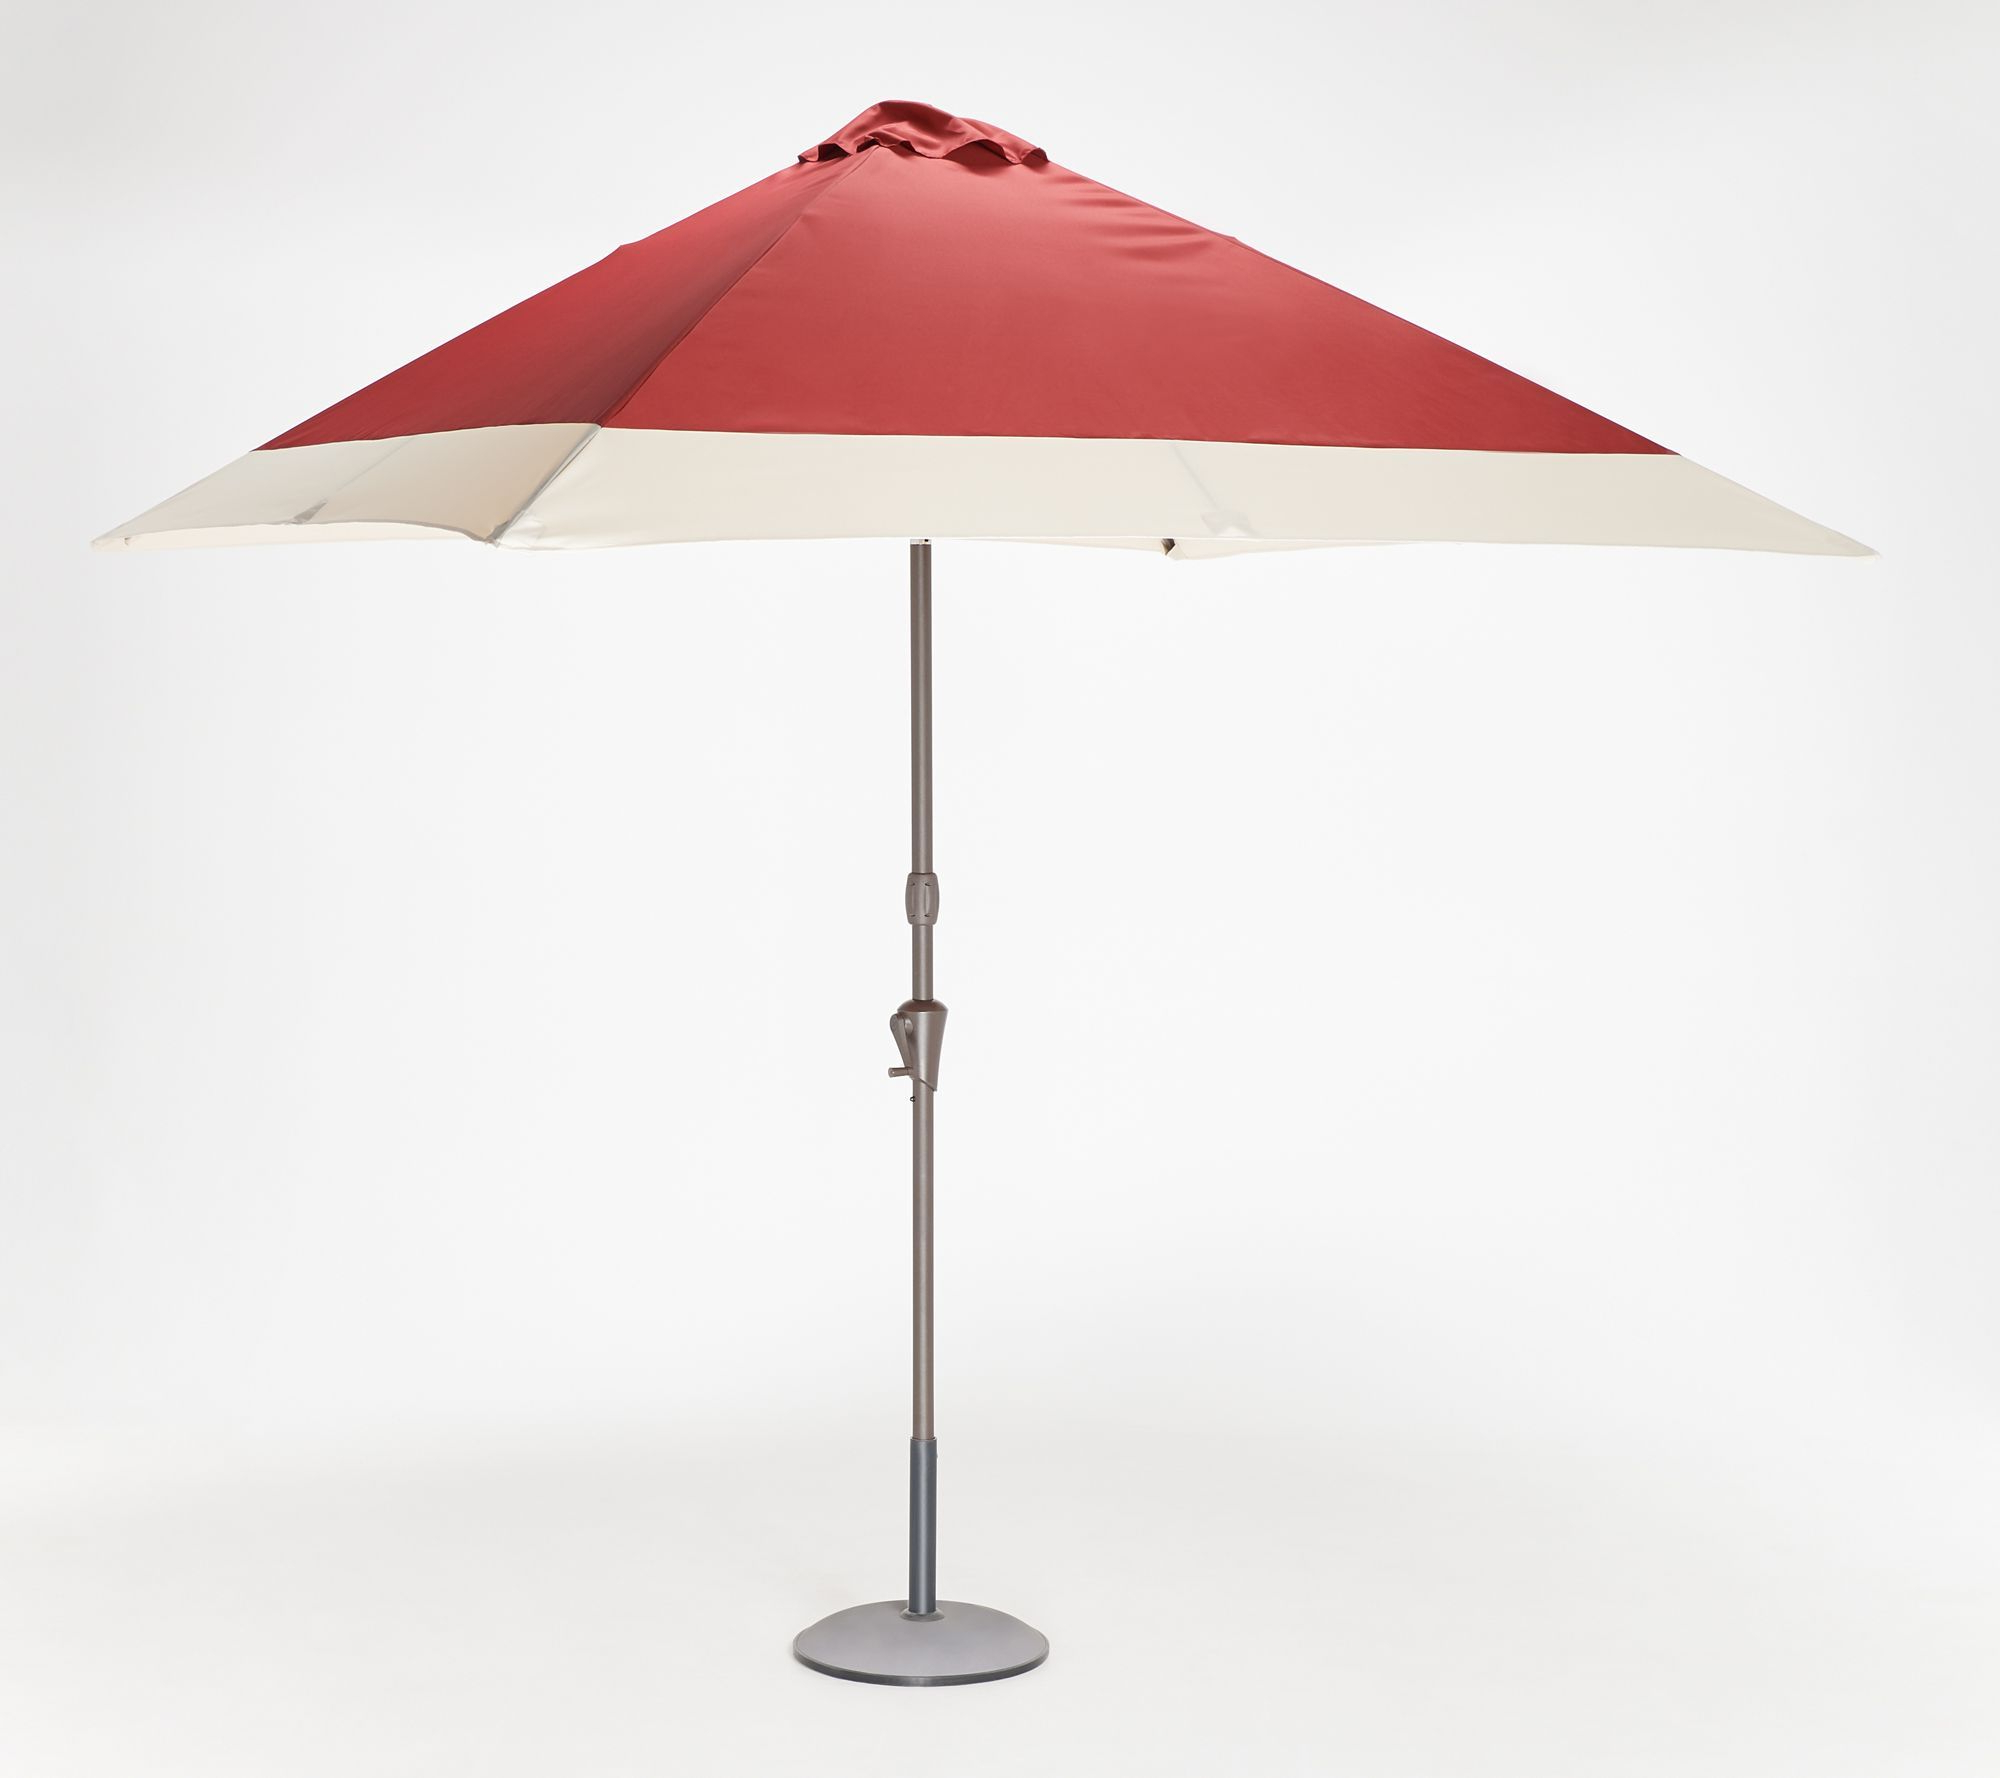 "Hyperion Market Umbrellas In Well Known Measurements: Umbrella Open 7.5' X 7.5' X 102""; Umbrella Folded 68 (Gallery 7 of 20)"